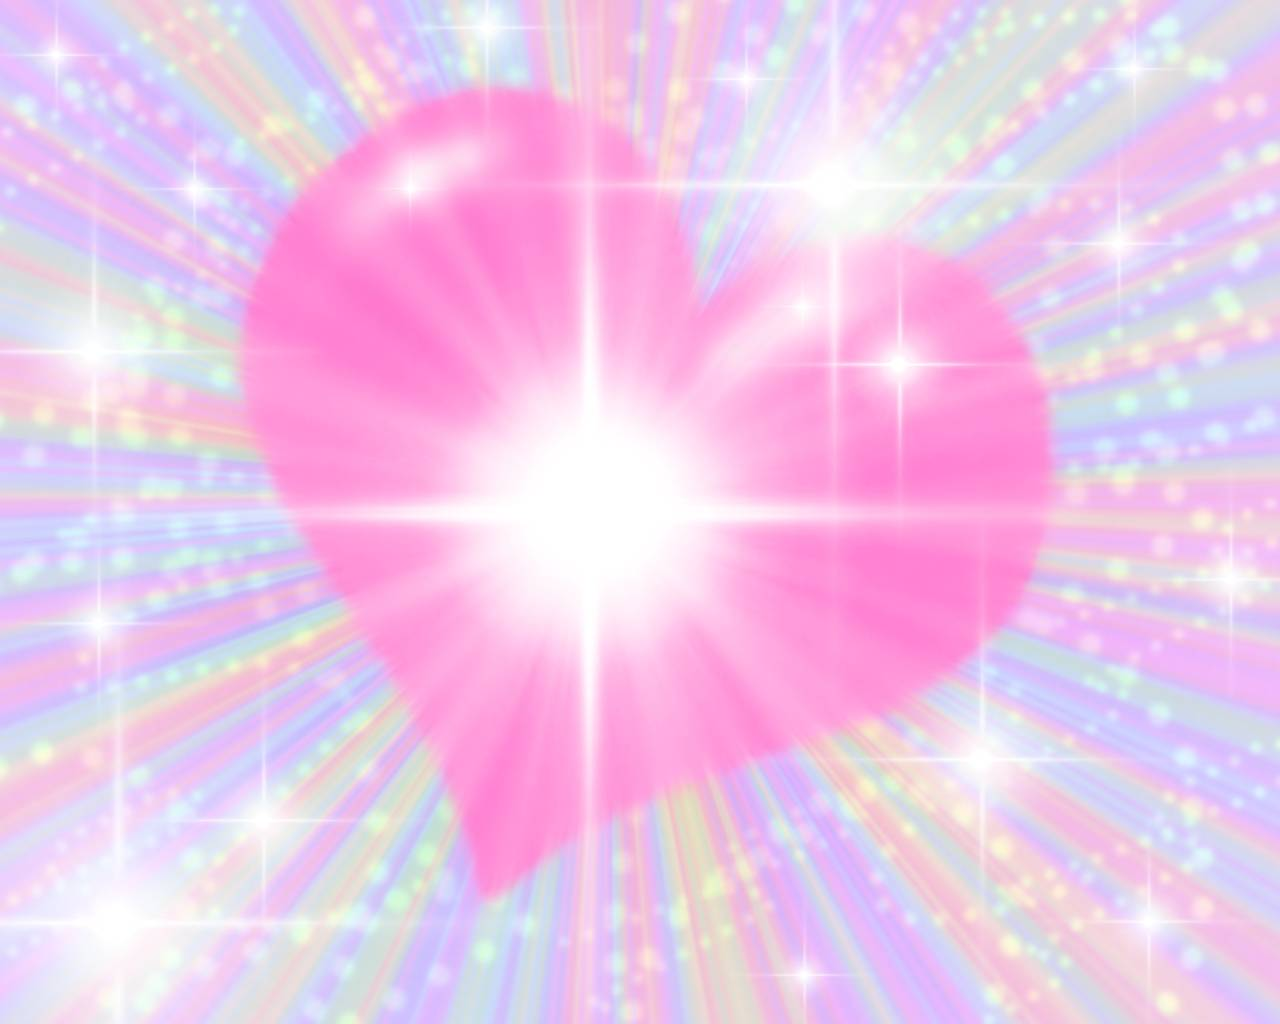 Background Wallpaper Image: Pink Starburst Heart